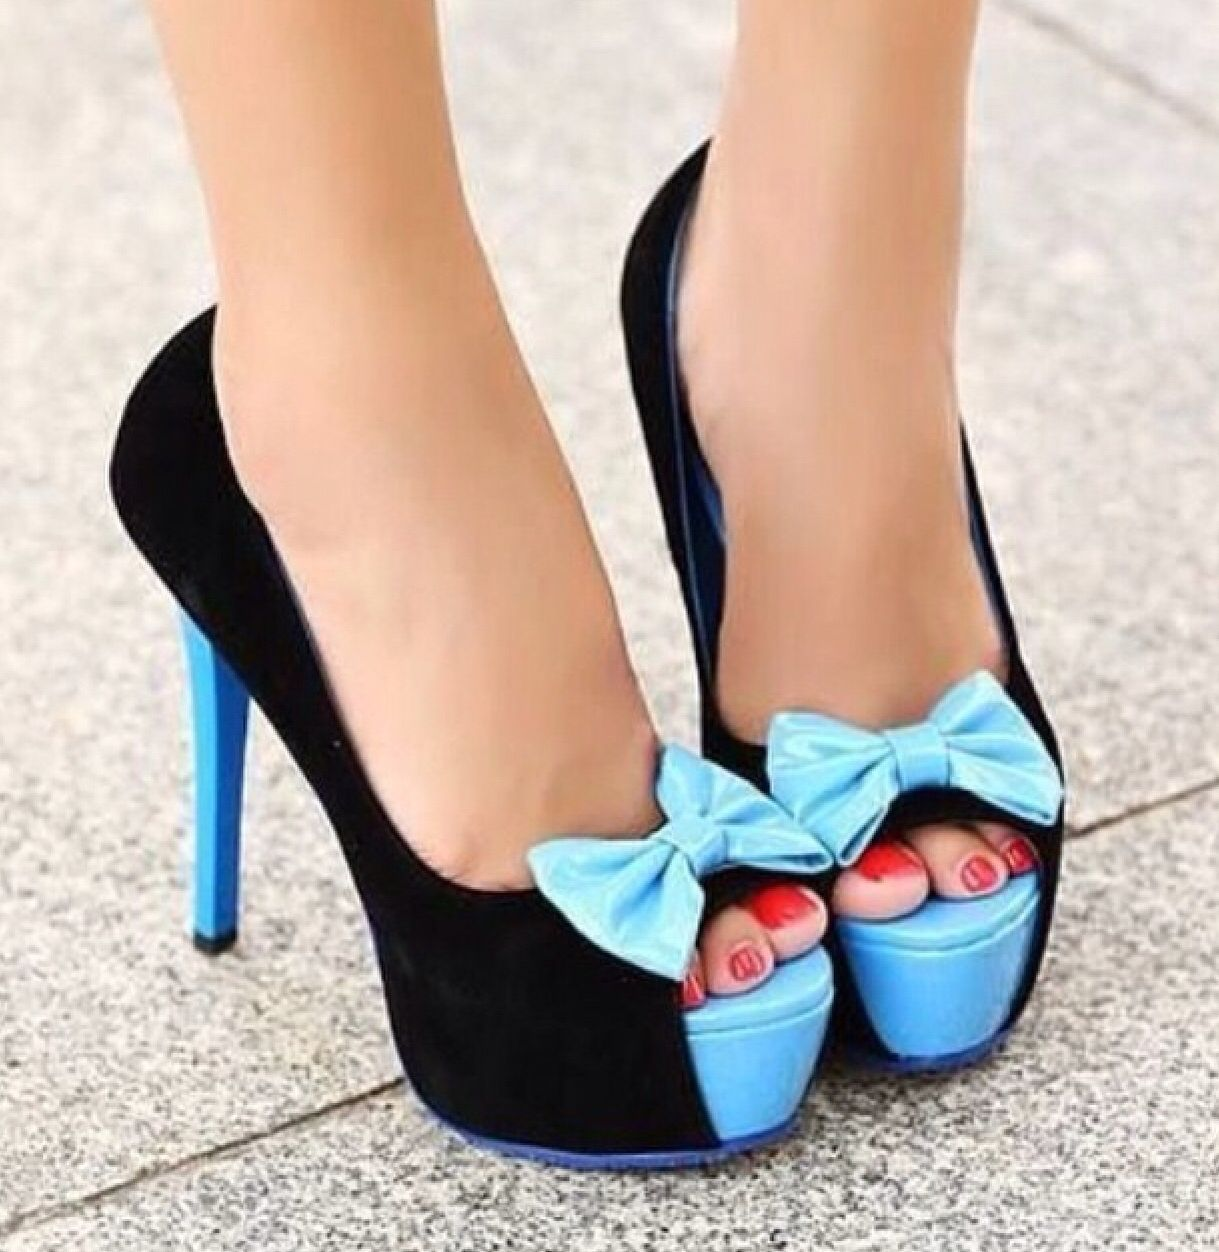 These shoes would be perfect for a formal event!! So cute ...